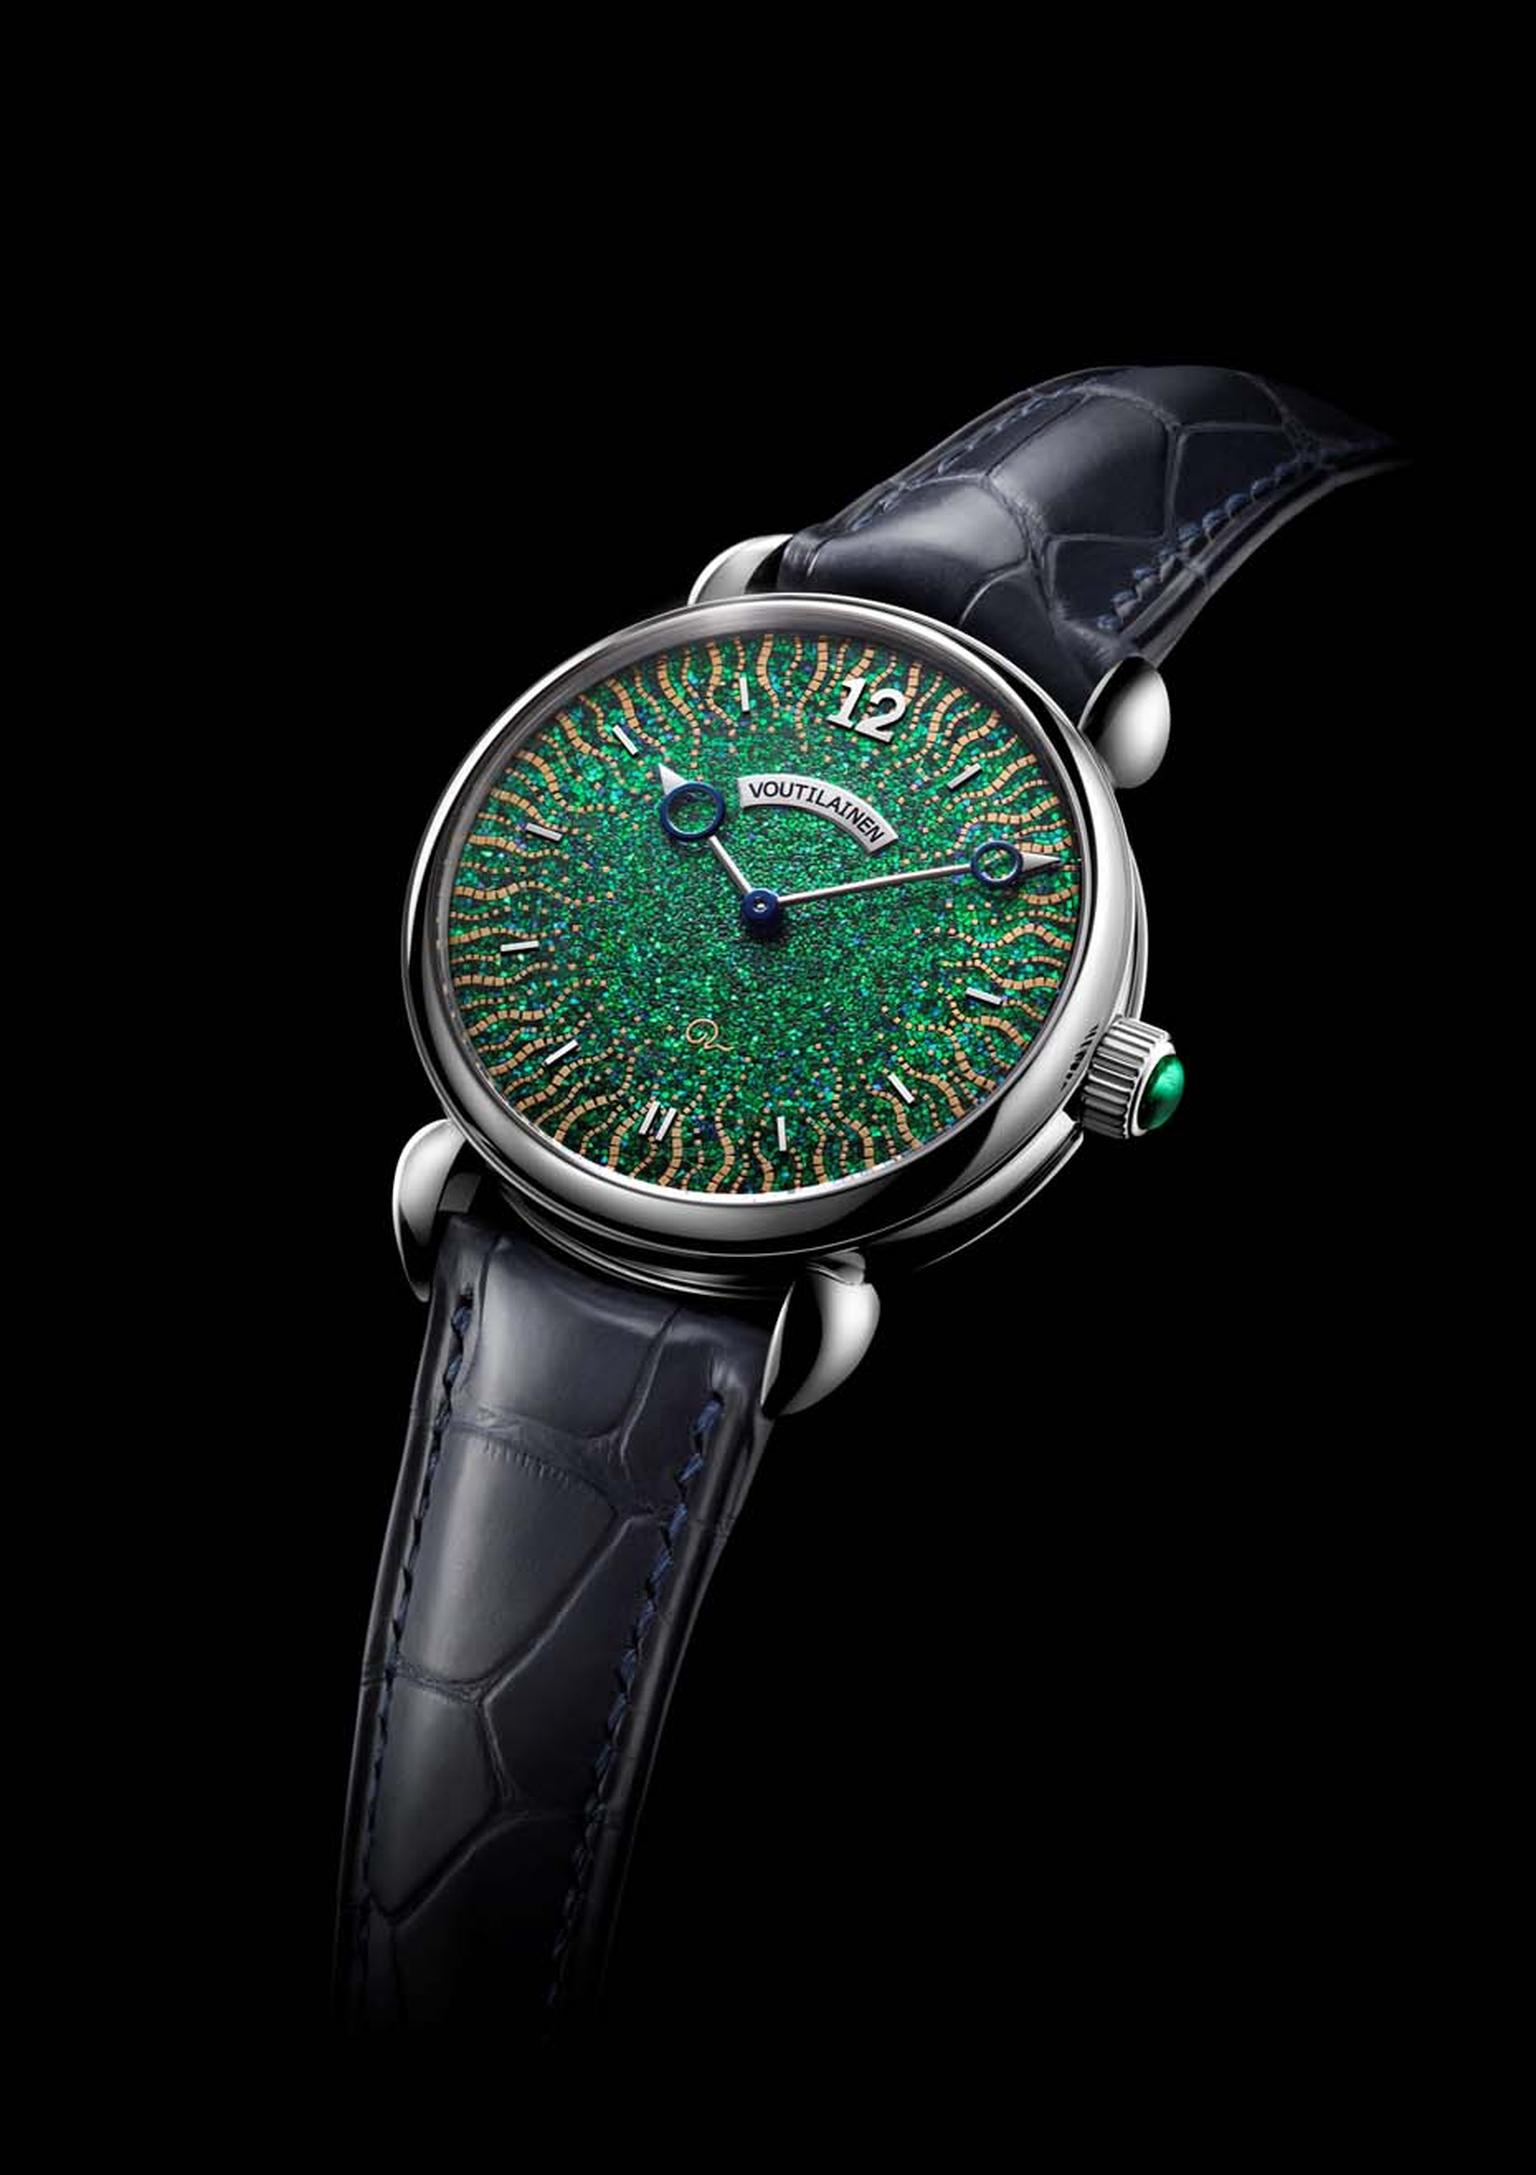 The Voutilainen Hisui watch is a fusion of Swiss watchmaking prowess and the ancient Japanese art of lacquer practiced in the Edo period. Both the dial and the bridges of the movement have been lacquered, which took a total of 1,000 hours to complete.